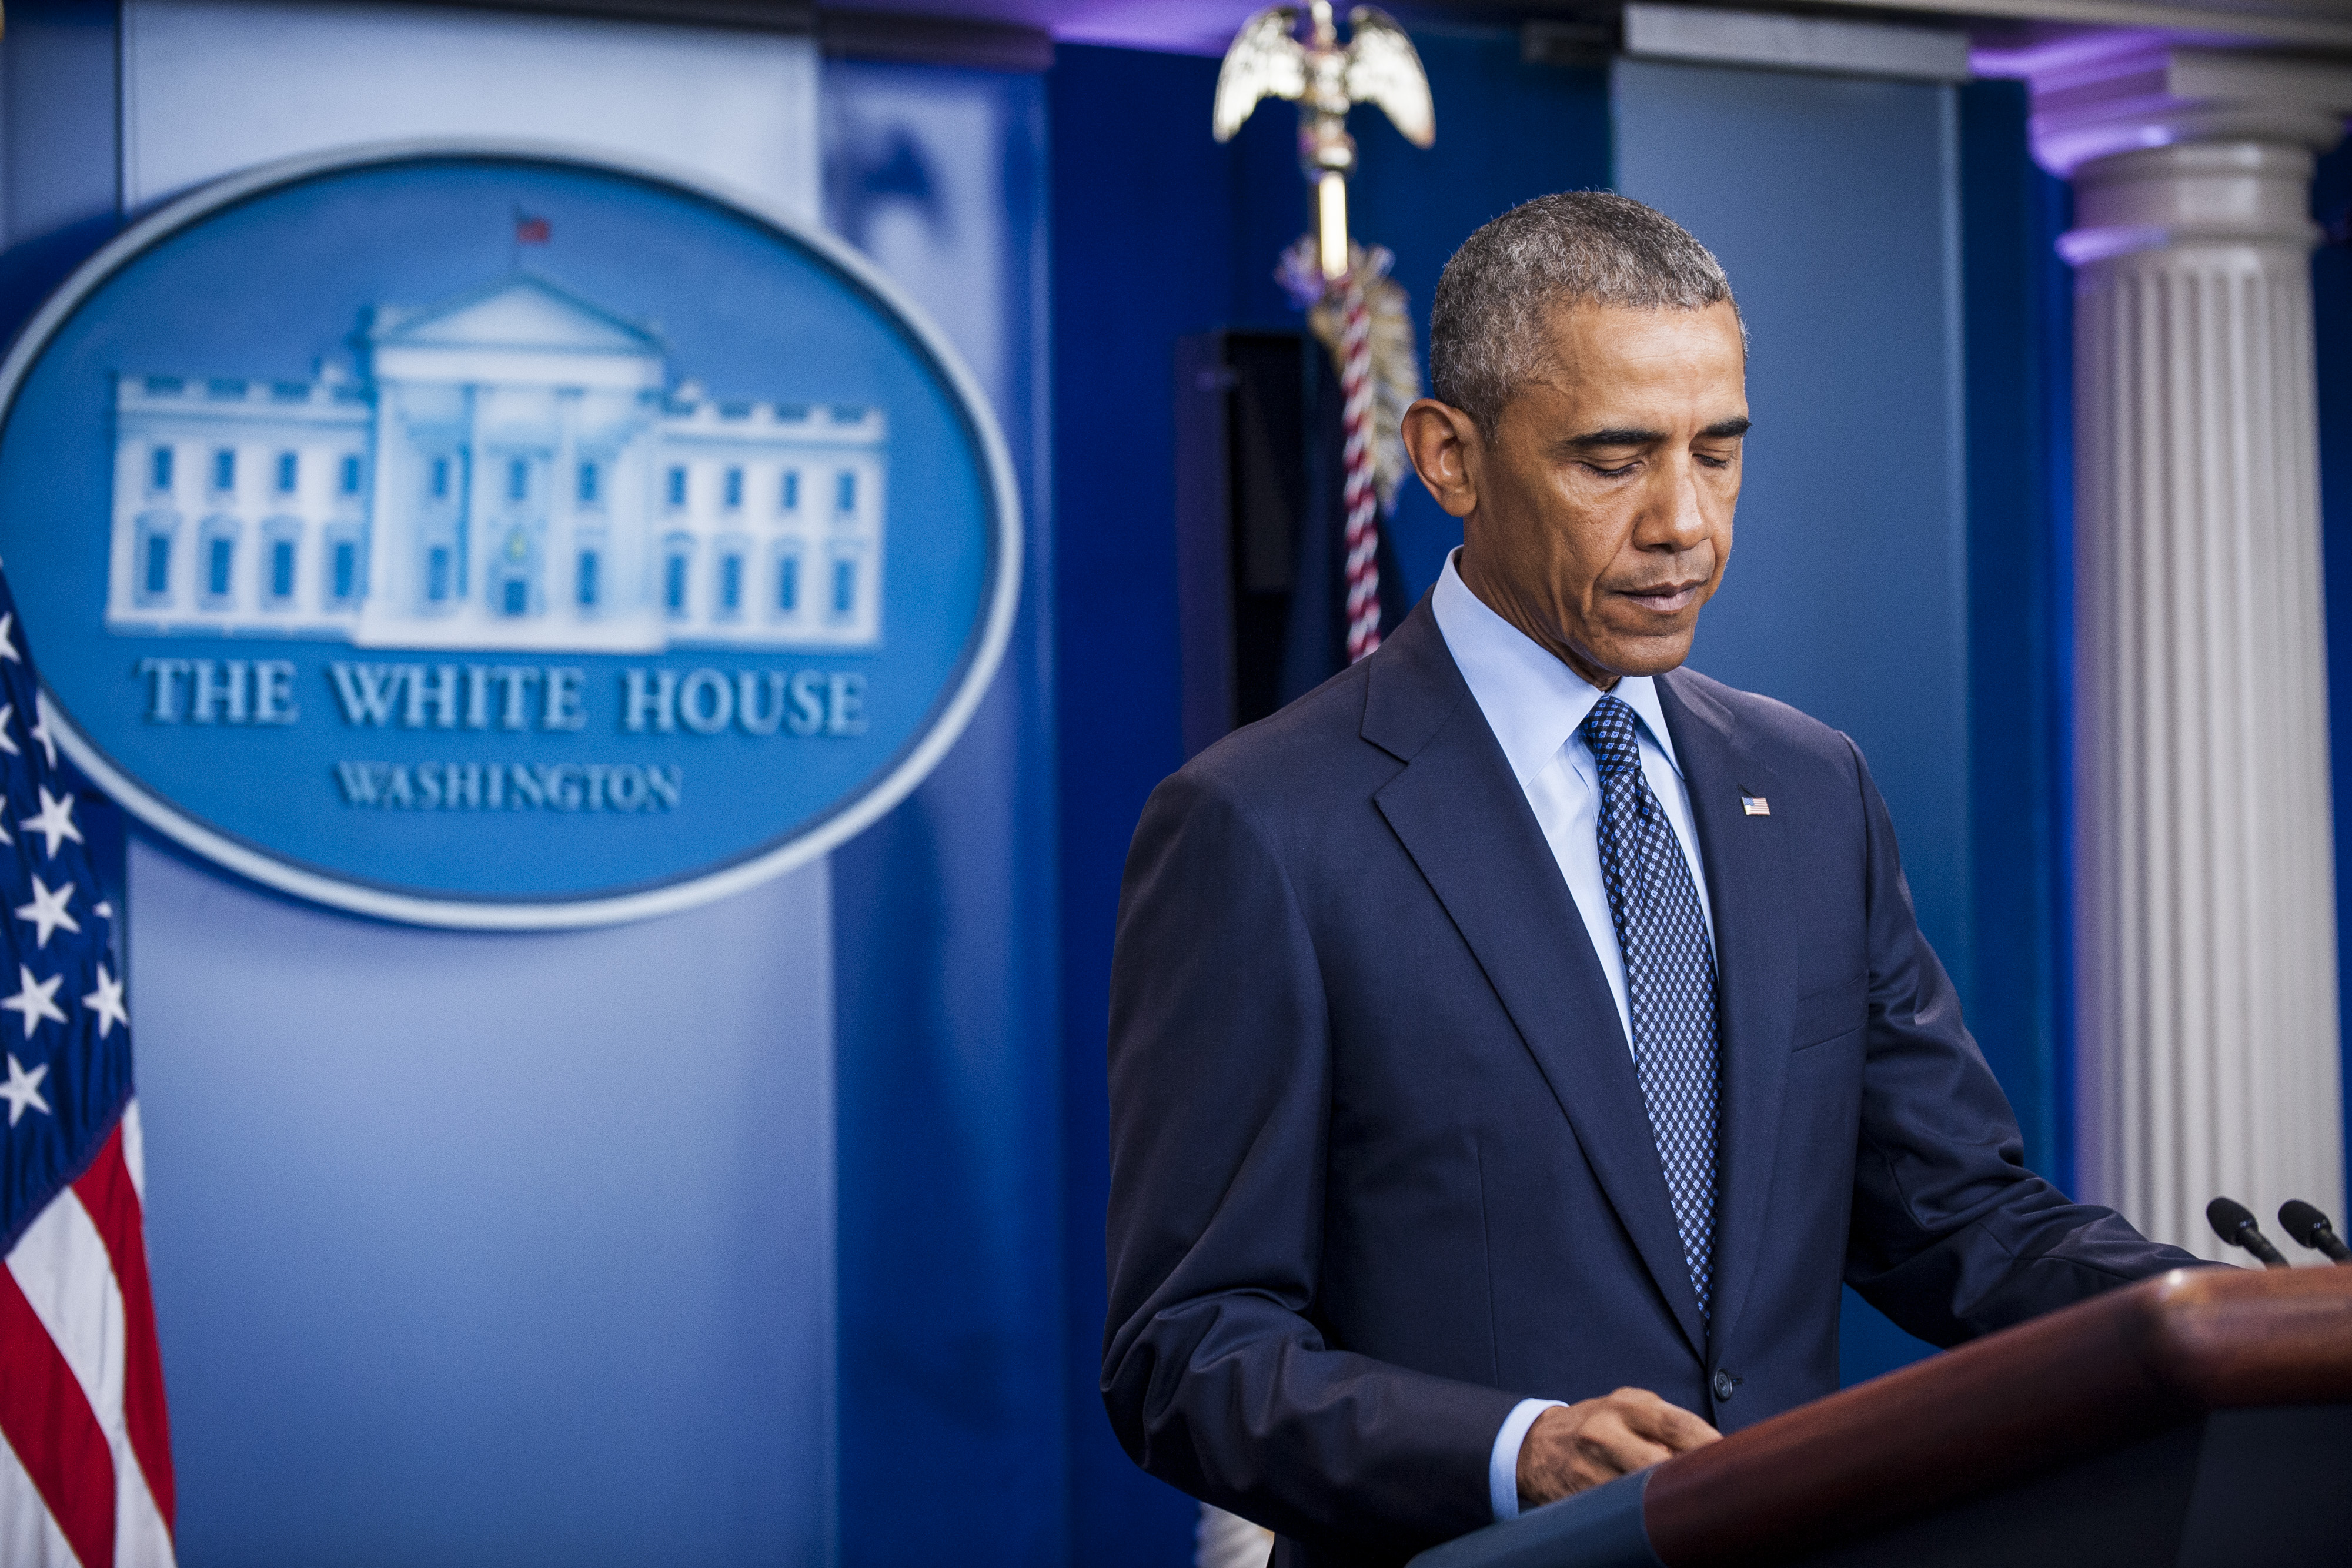 President Barack Obama Makes Statement On Deadliest Mass Shooting in U.S. History